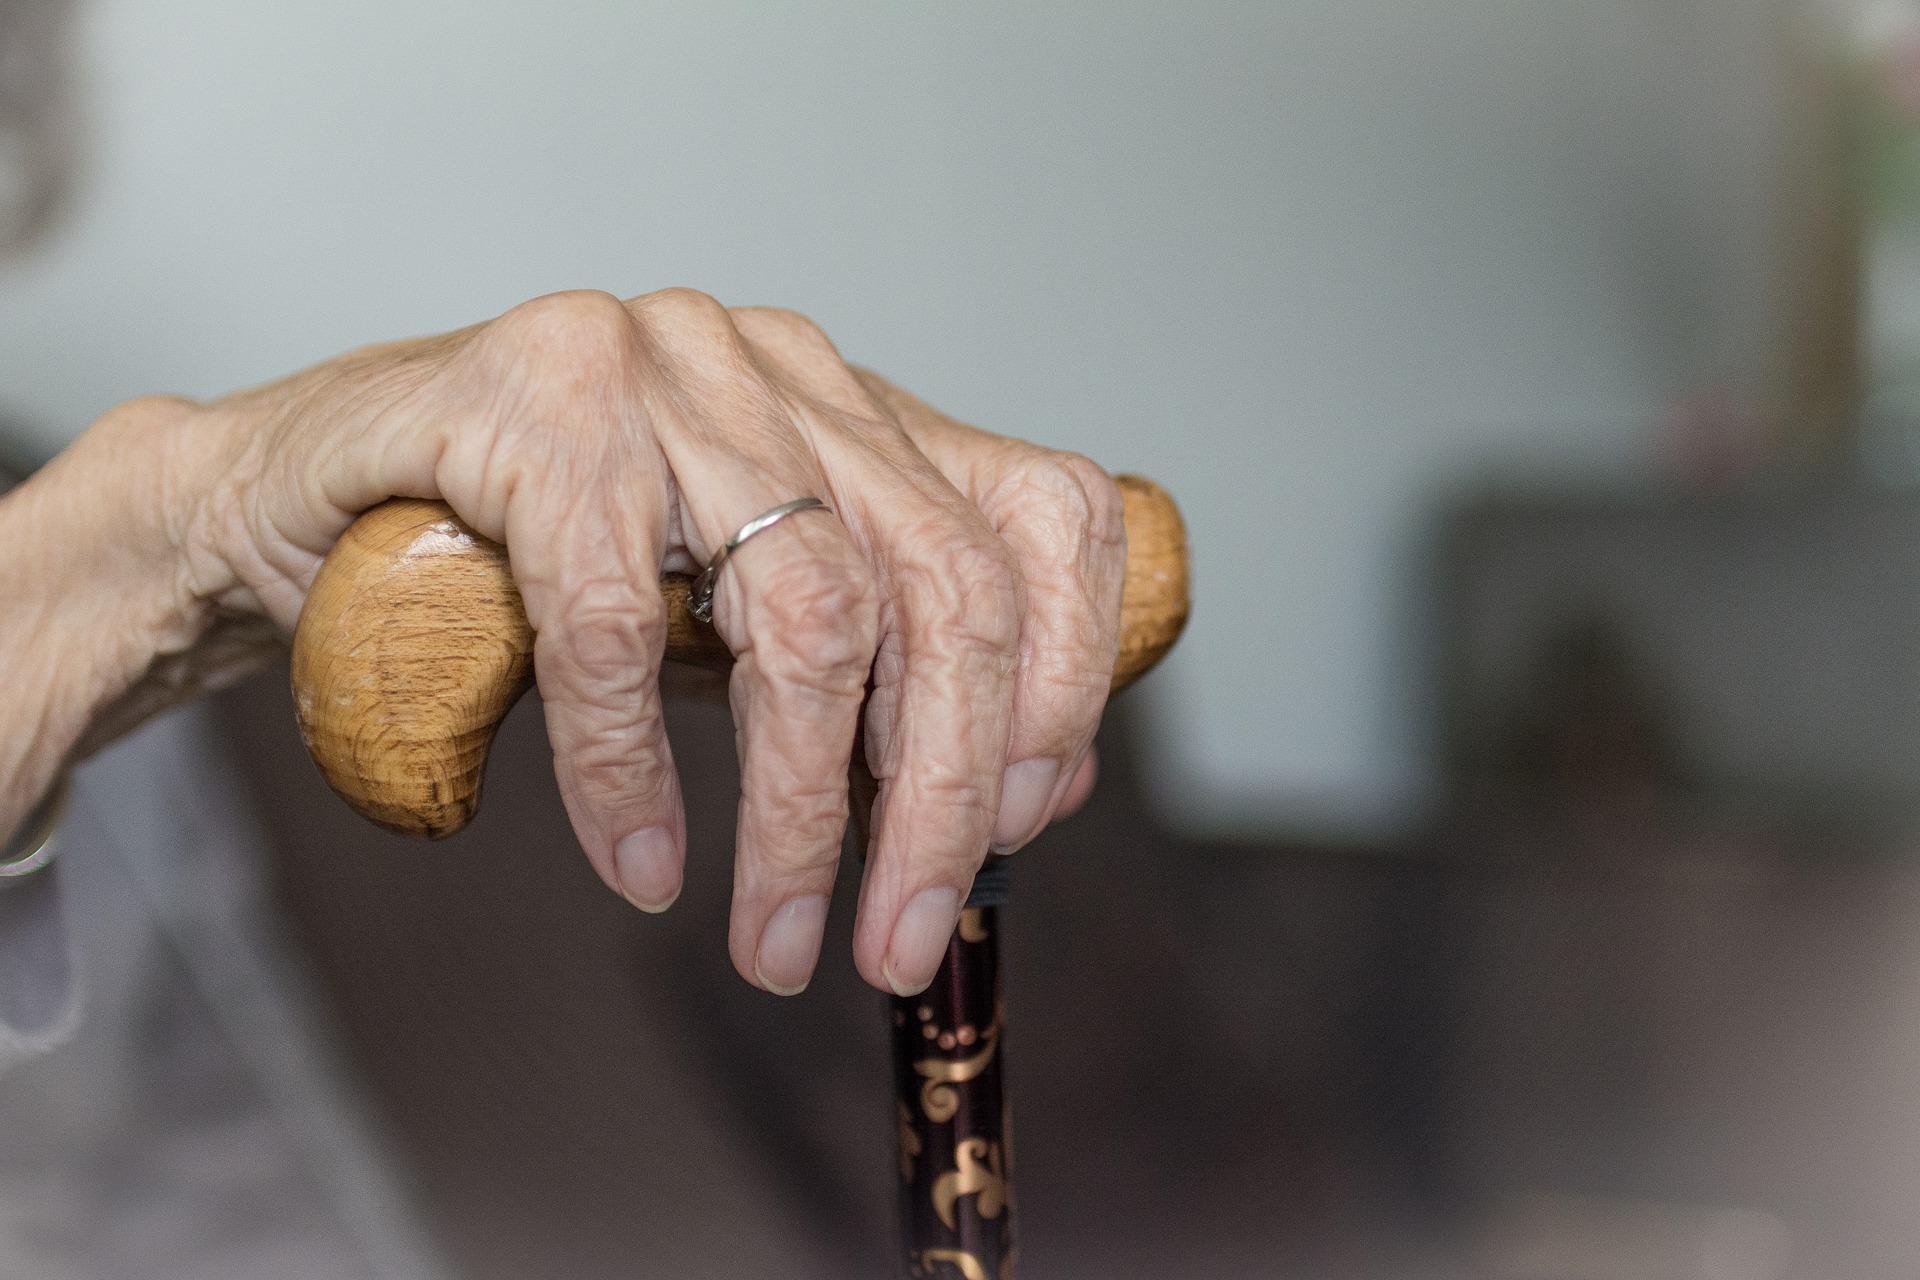 Old woman hand on cane in memory care facility